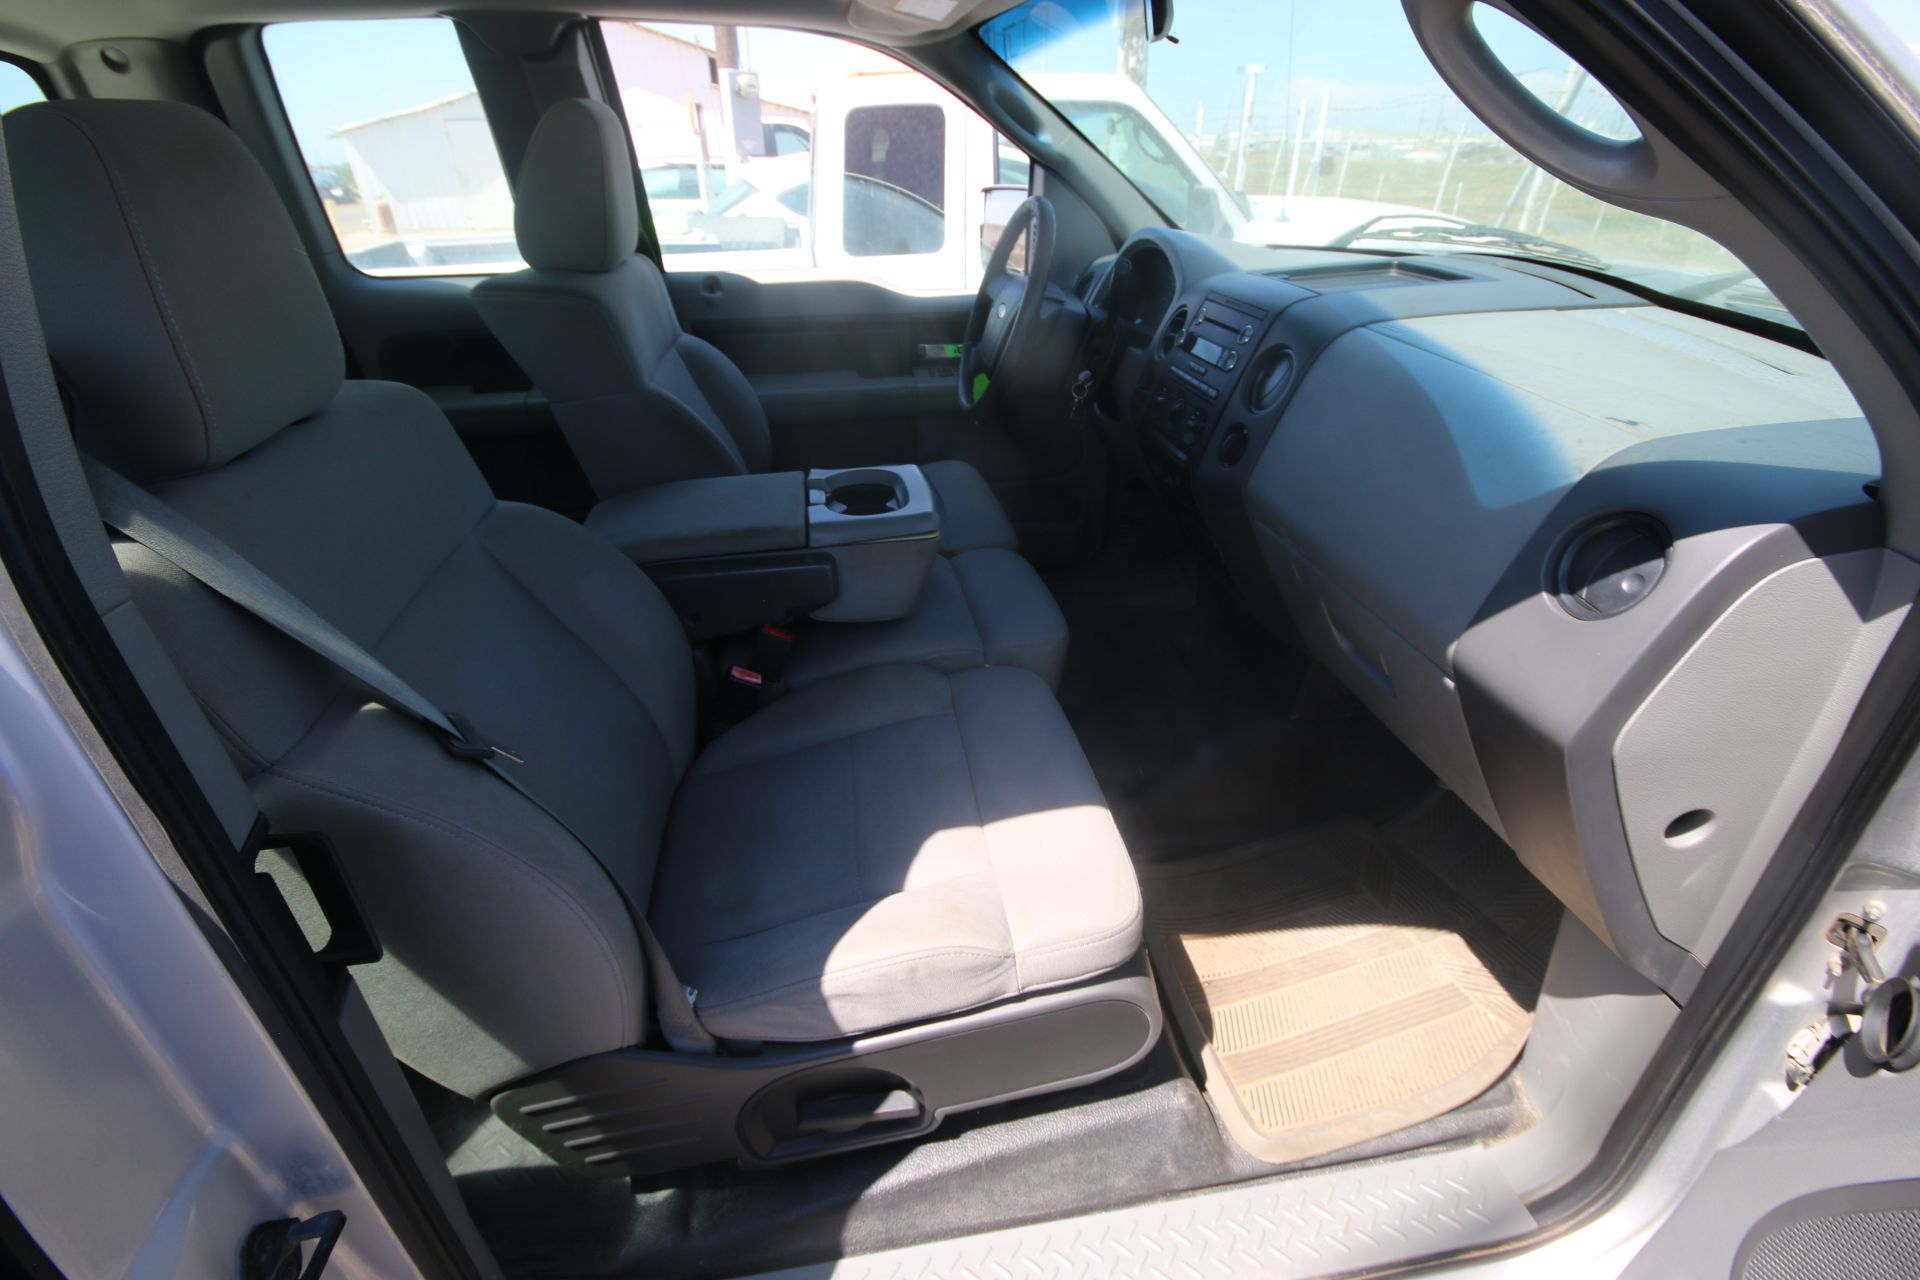 2008 Ford F150 Pick Up Truck, VIN #: 1FTRX12W7BFB9710, with 214,817 Miles, Started Up as of 06/24/ - Image 11 of 24